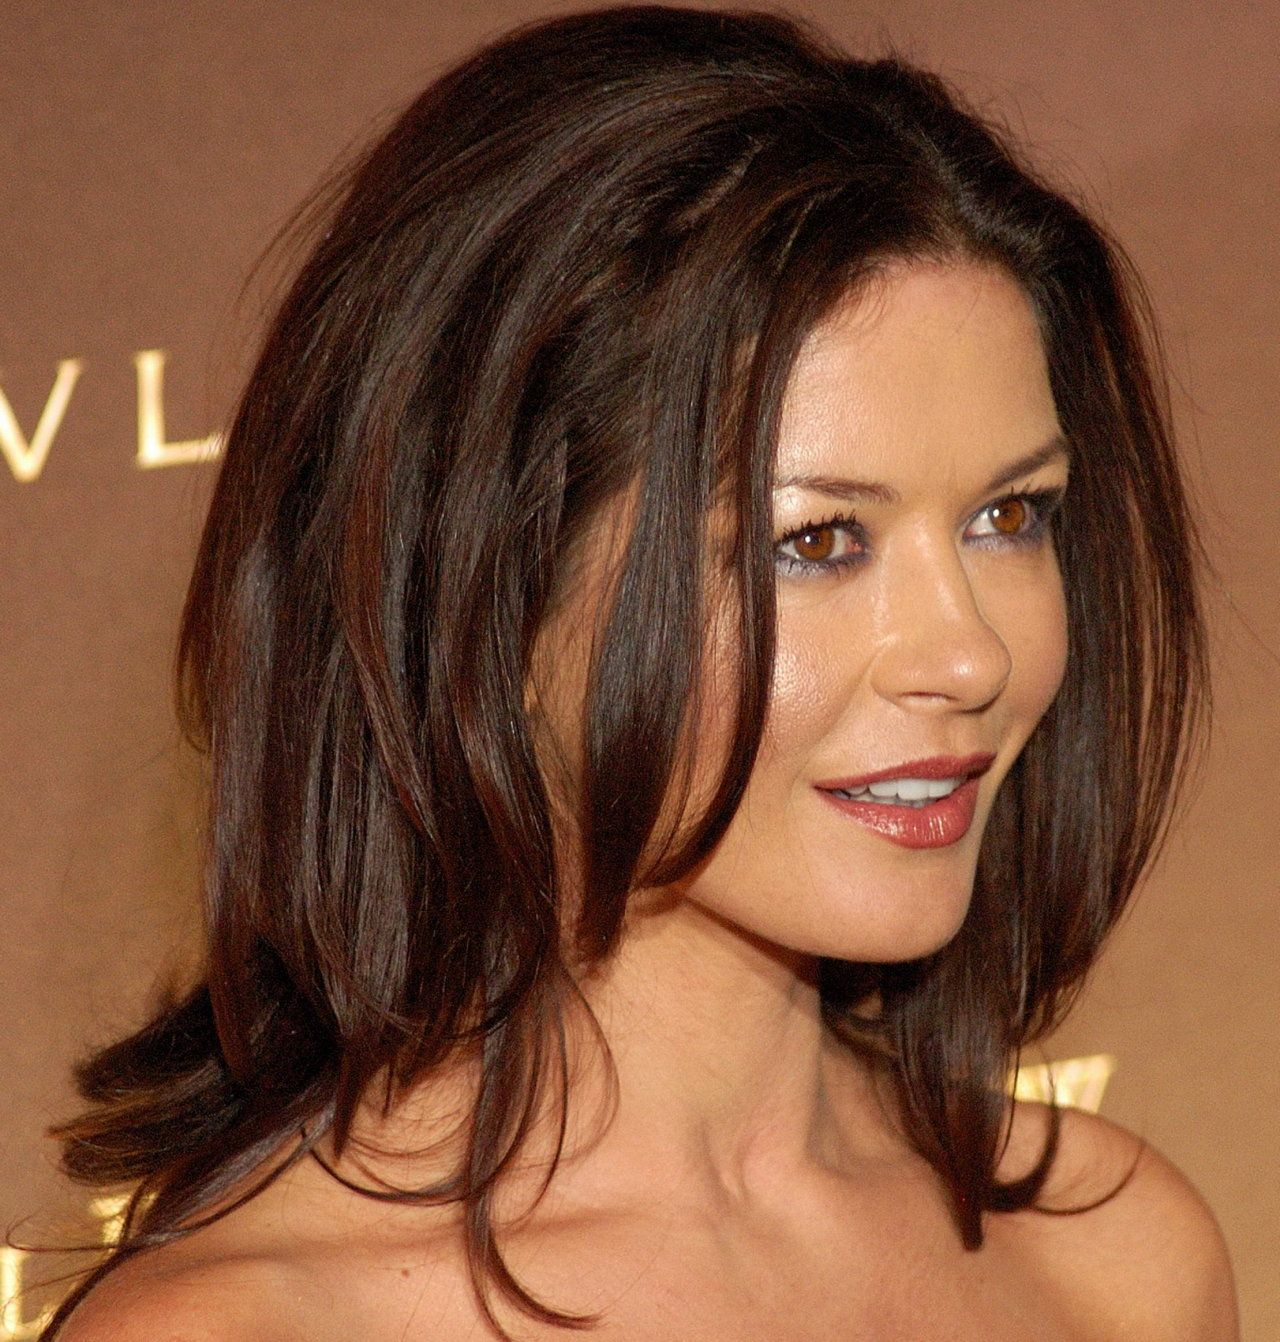 Catherine zeta jones eyes authoritative